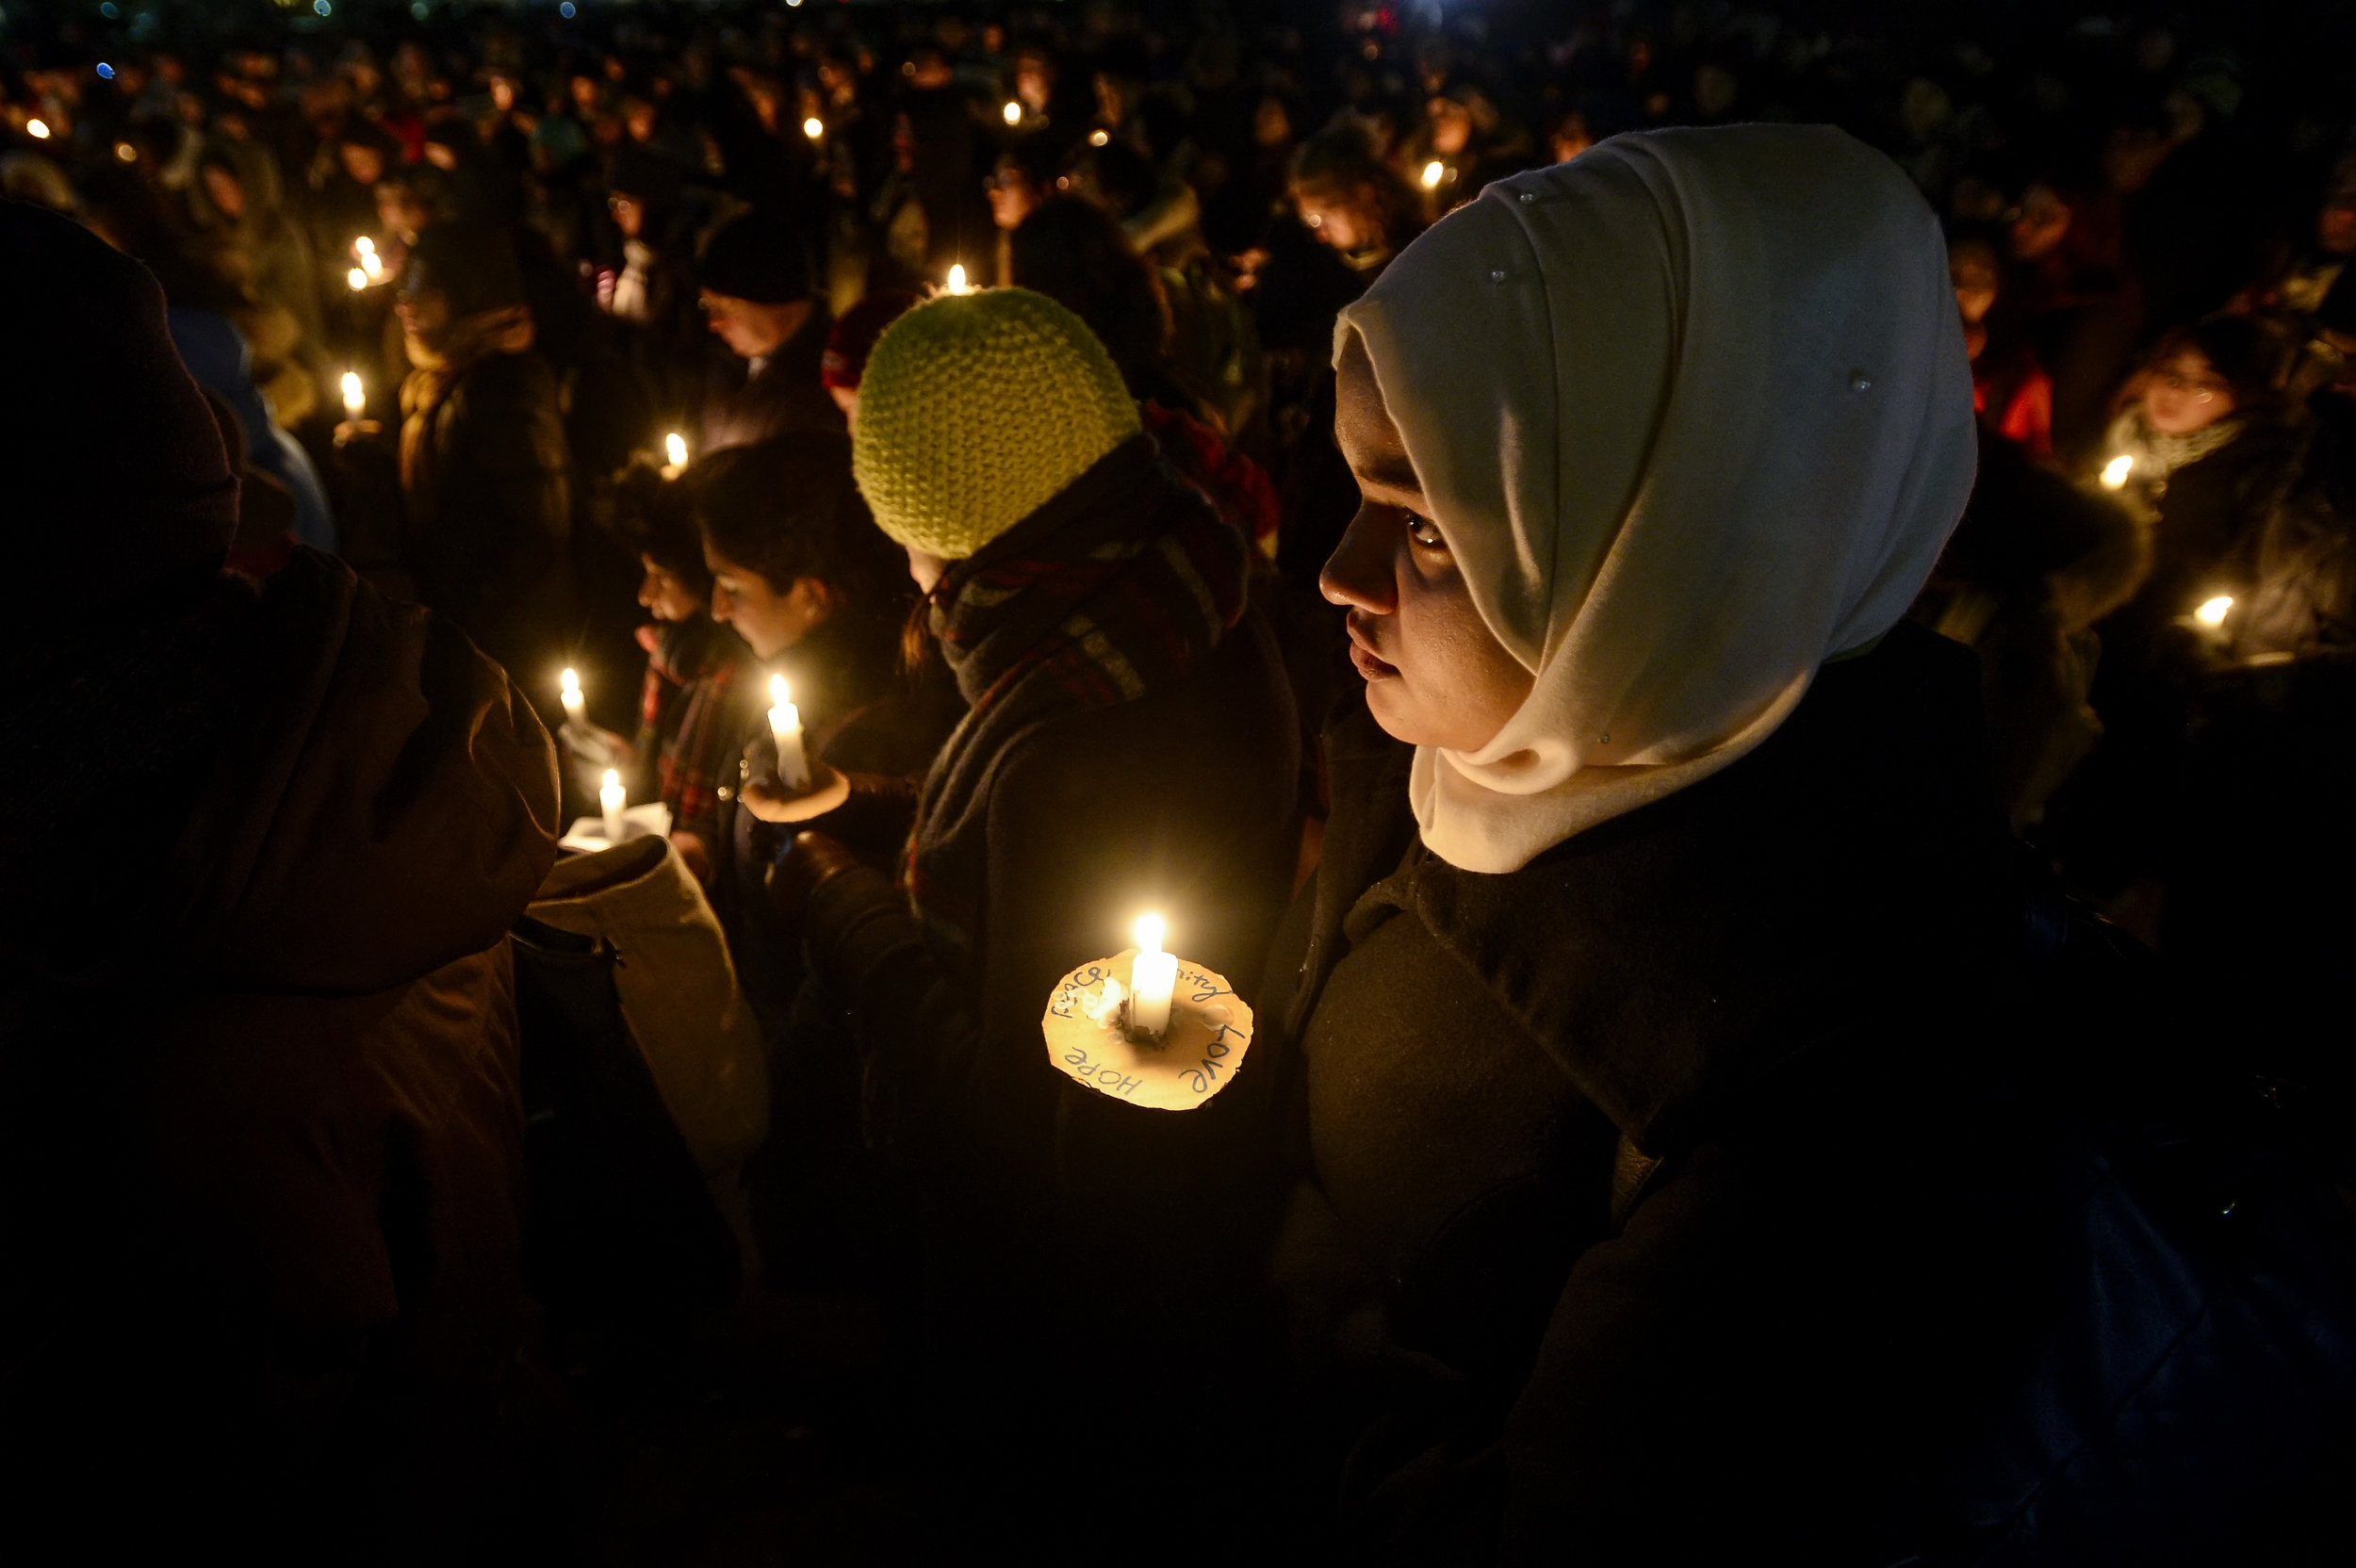 Noshin Chowdhury, 19, listens to a spoken word artist during a vigil held at the University of Toronto for the 6 victims killed after a shooting at a Quebec City mosque. Hundreds of people gathered at King's College Circle at the University of Toronto on Monday Jan. 20, 2017 to pay respects to those who lost their lives after the deadly shooting.